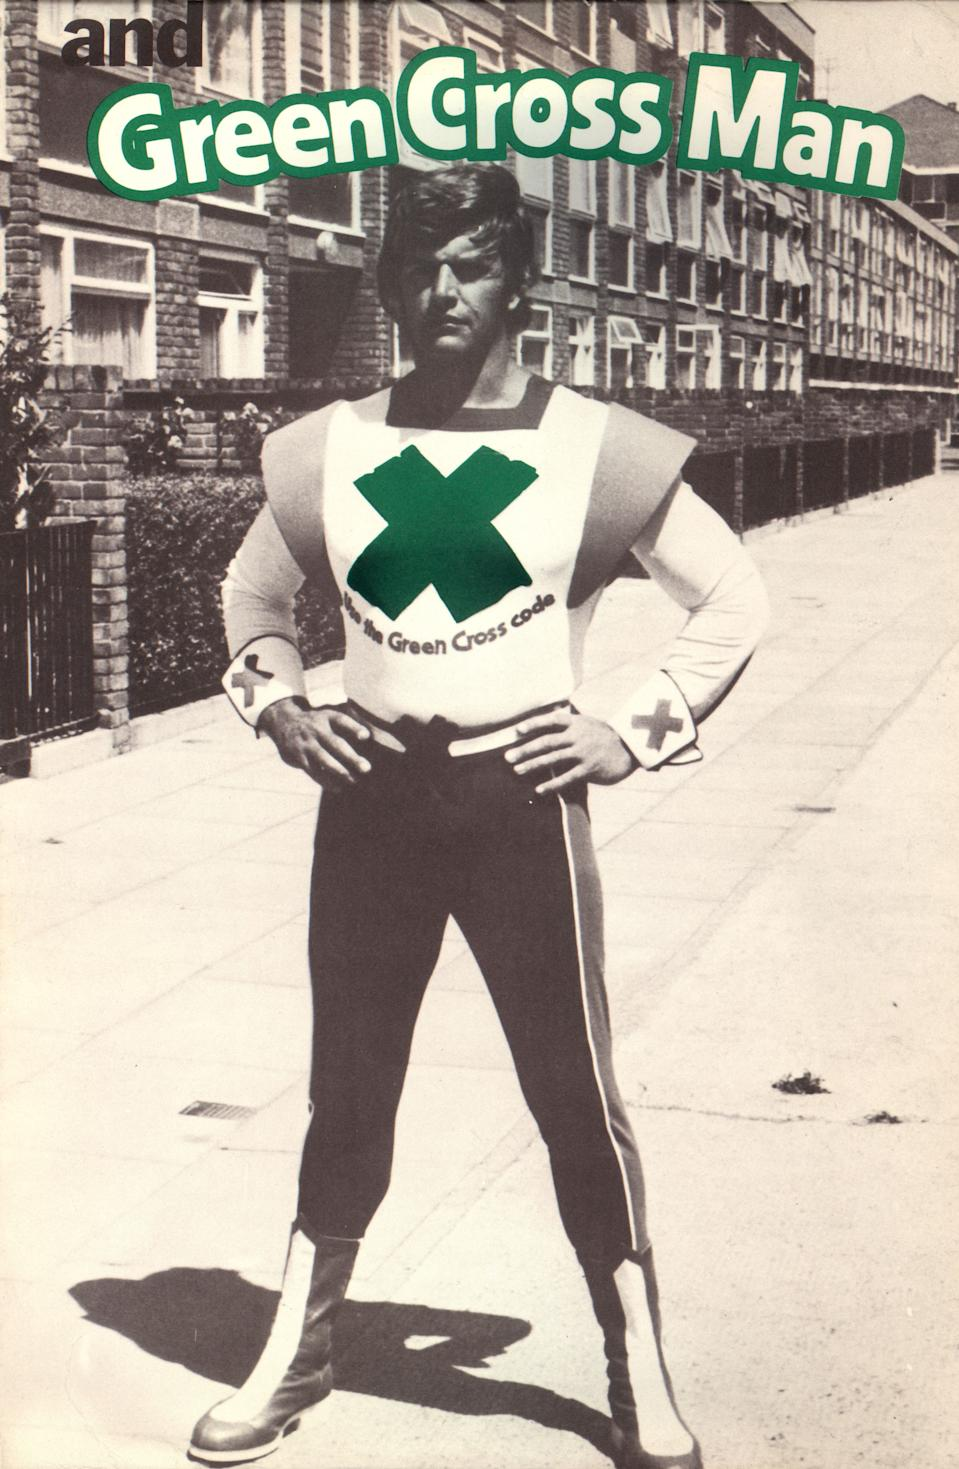 Dave Prowse as the Green Cross Man